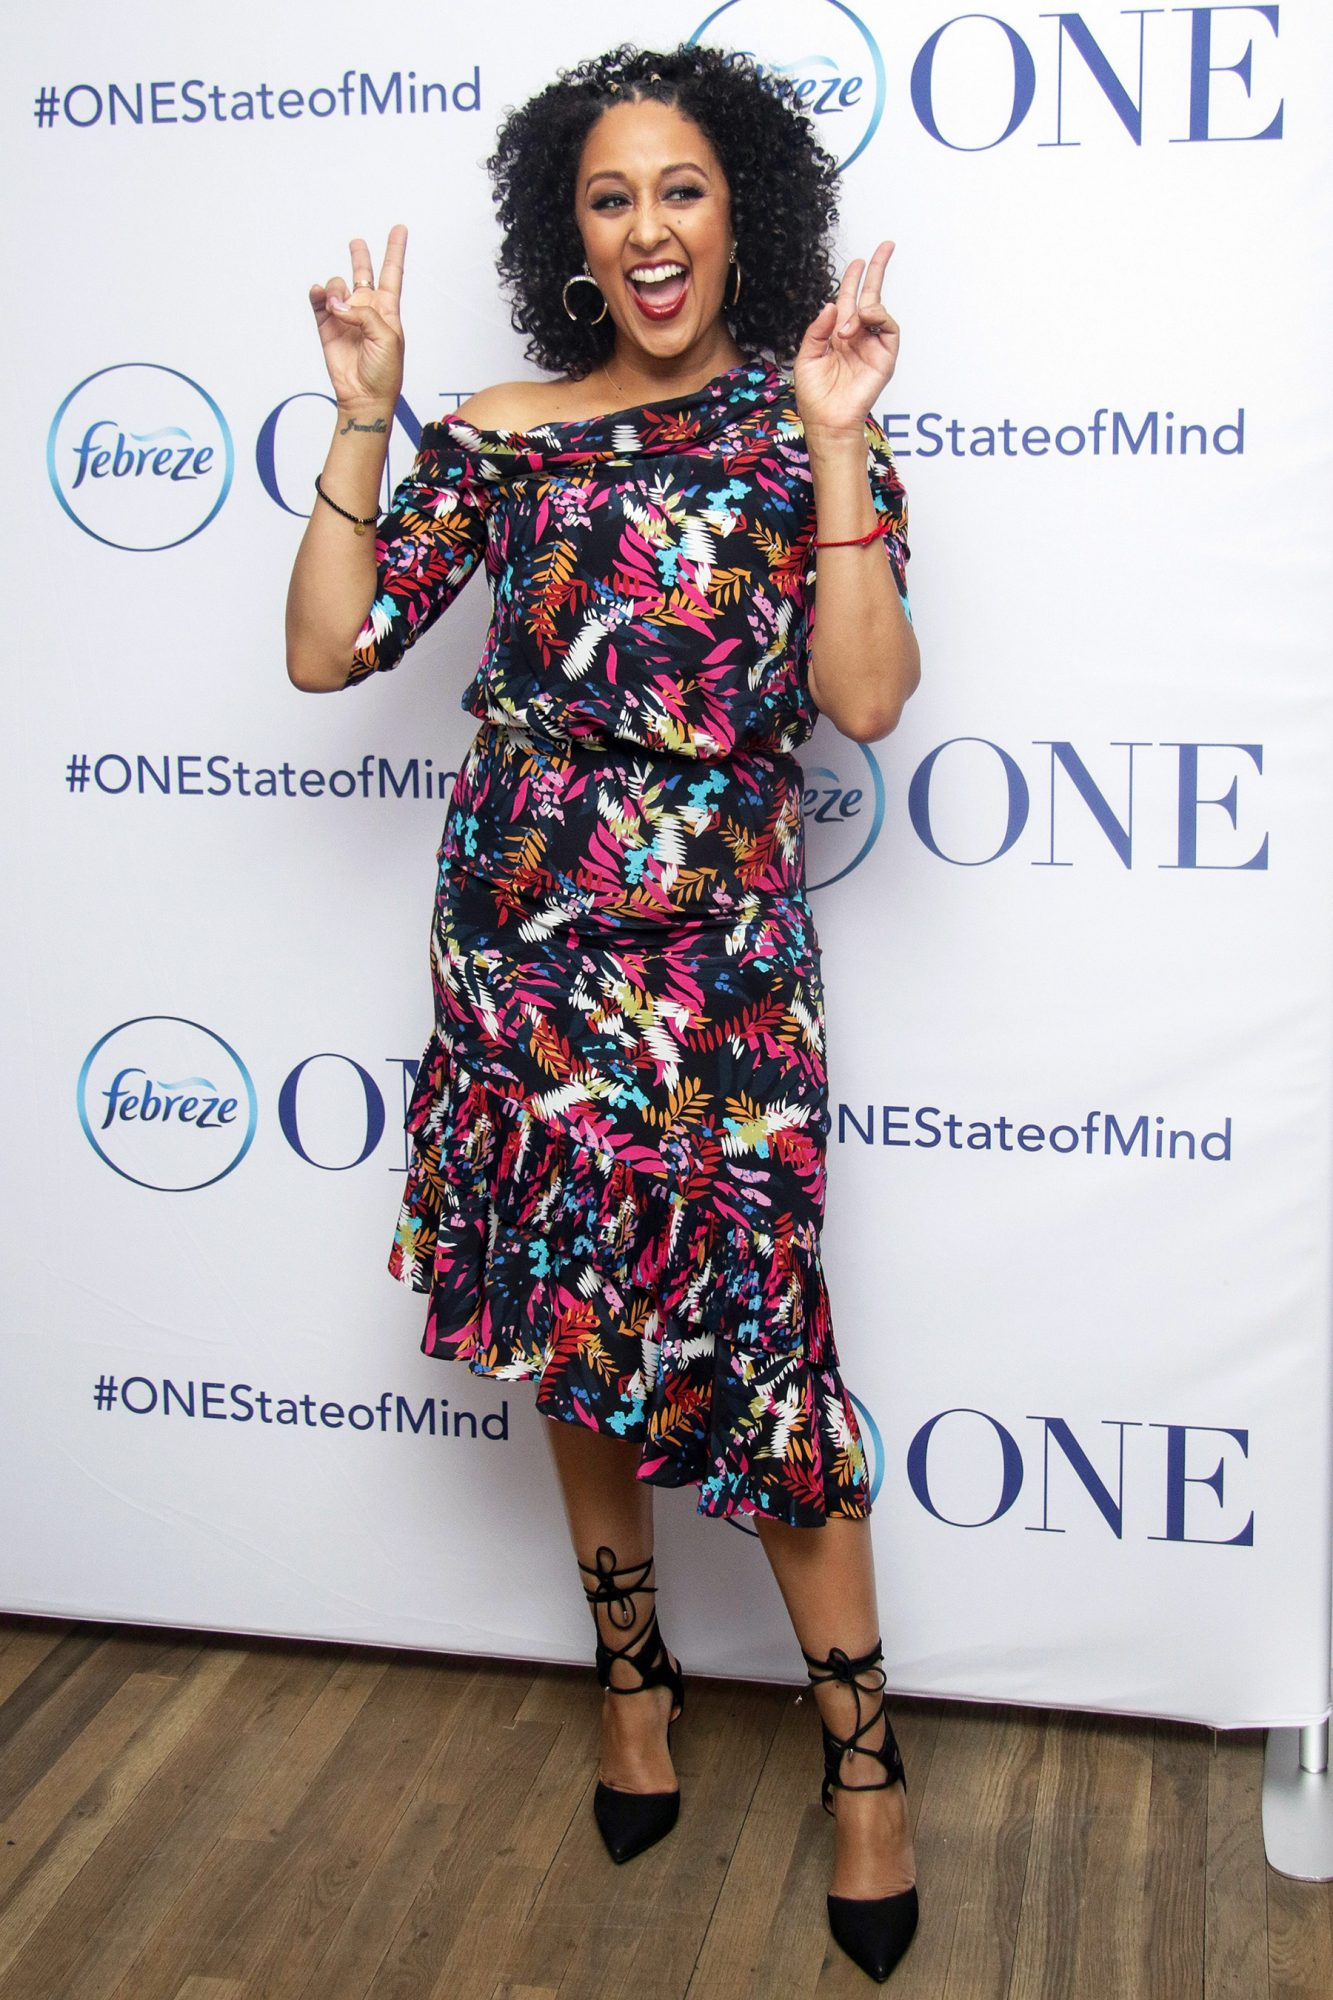 Tamera Mowry-Housley One Happy Home Video Series Launch With Febreze